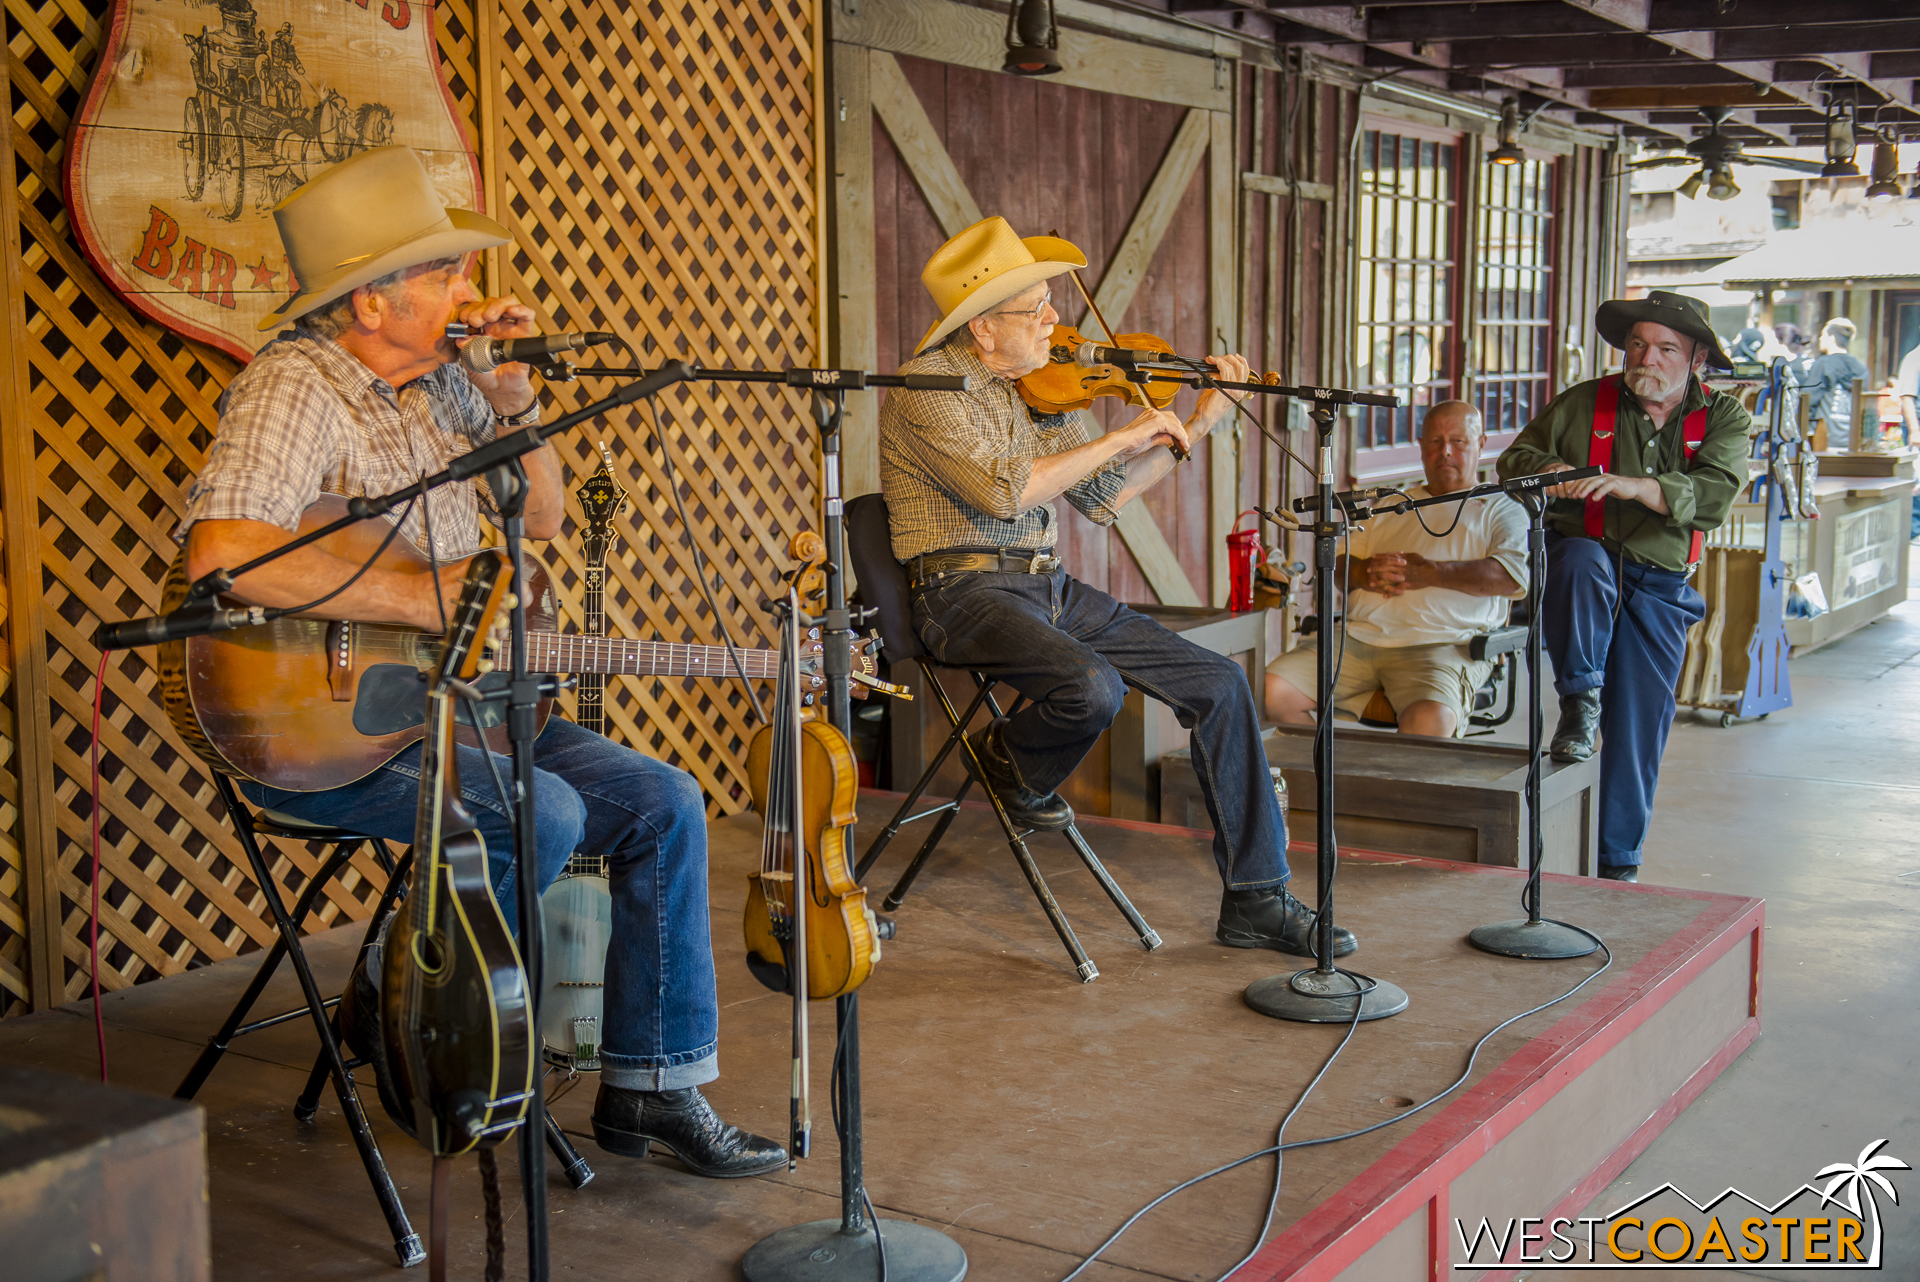 The musicians at the Fireman's BBQ Stage provided some great ambiance to Ghost Town.